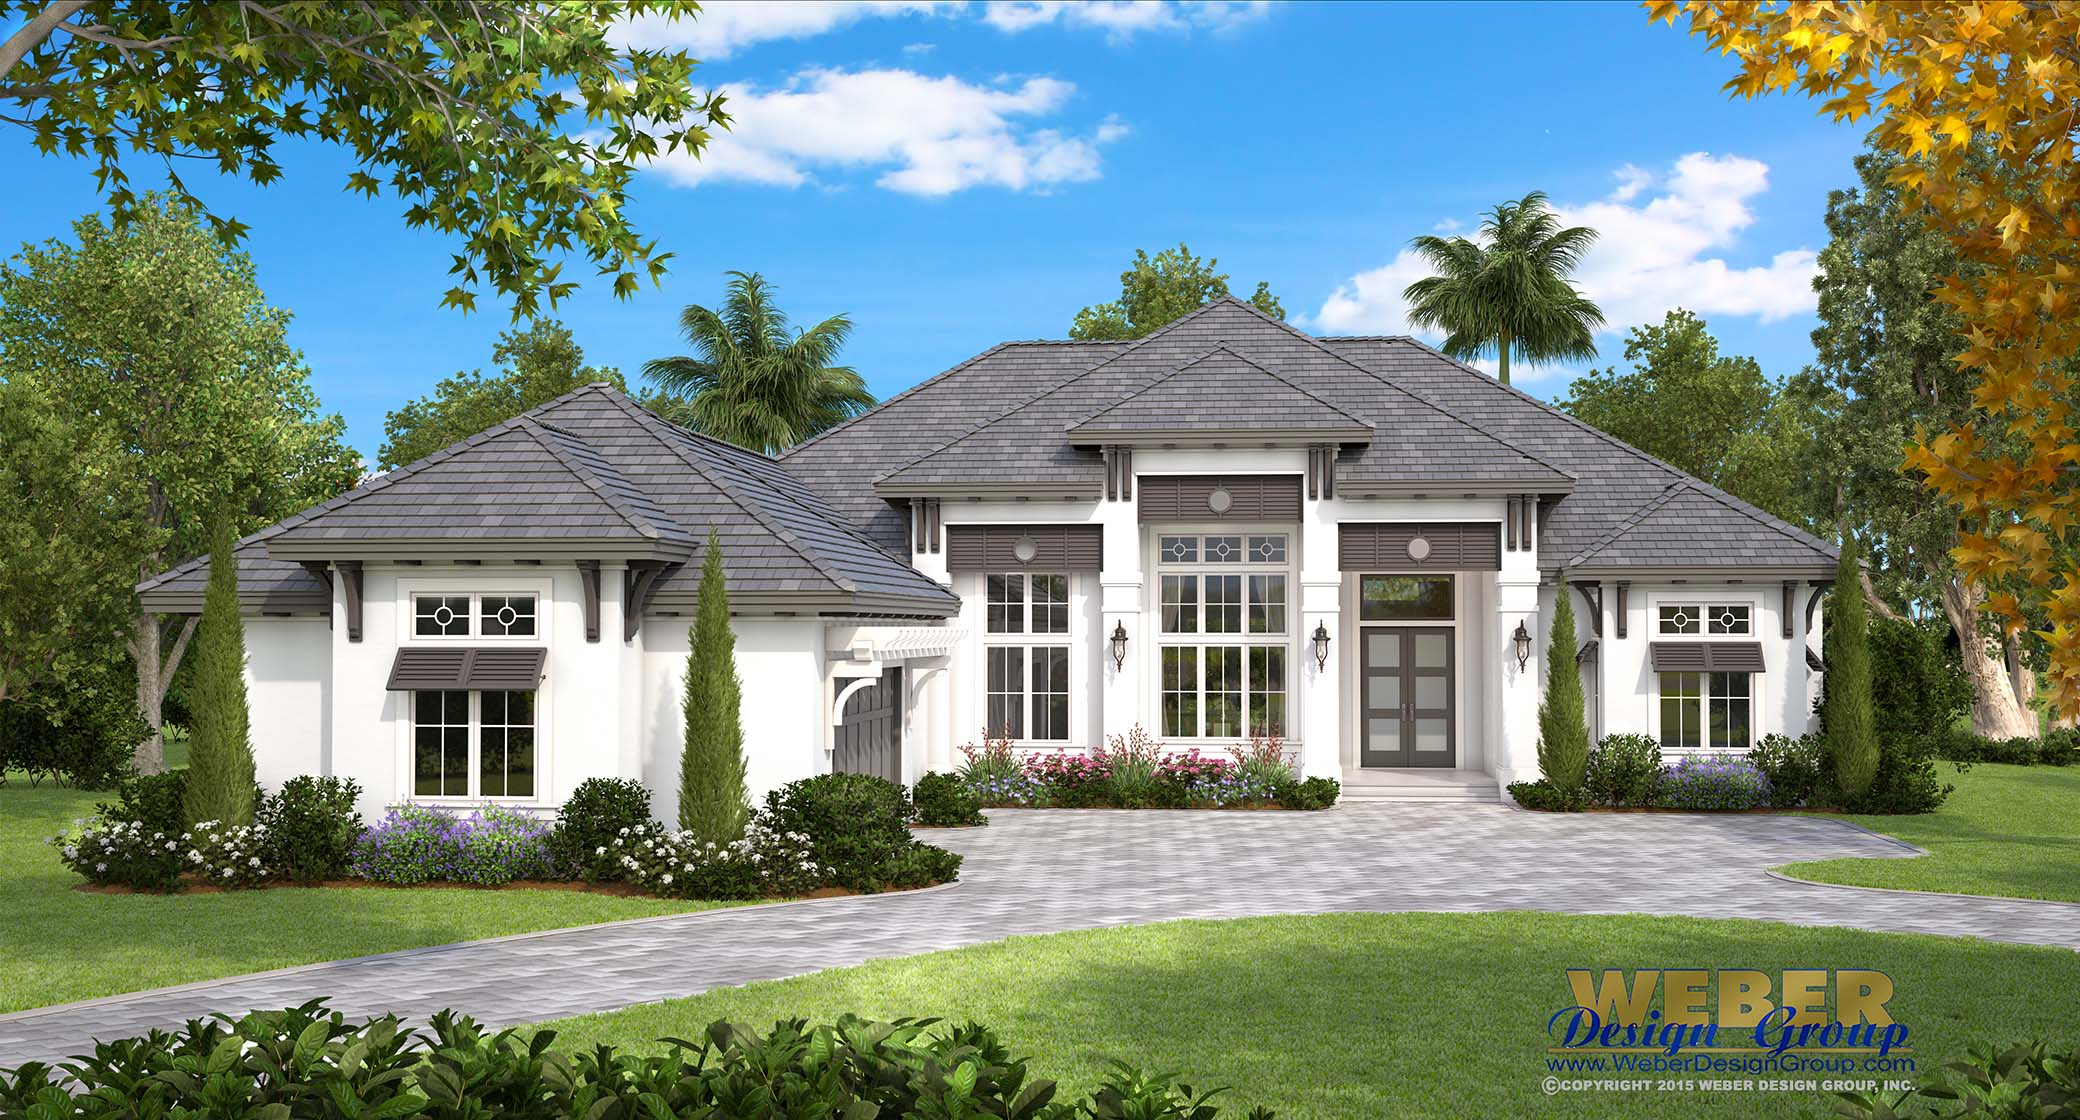 St lucia house plan weber design group naples fl for Weber house plans